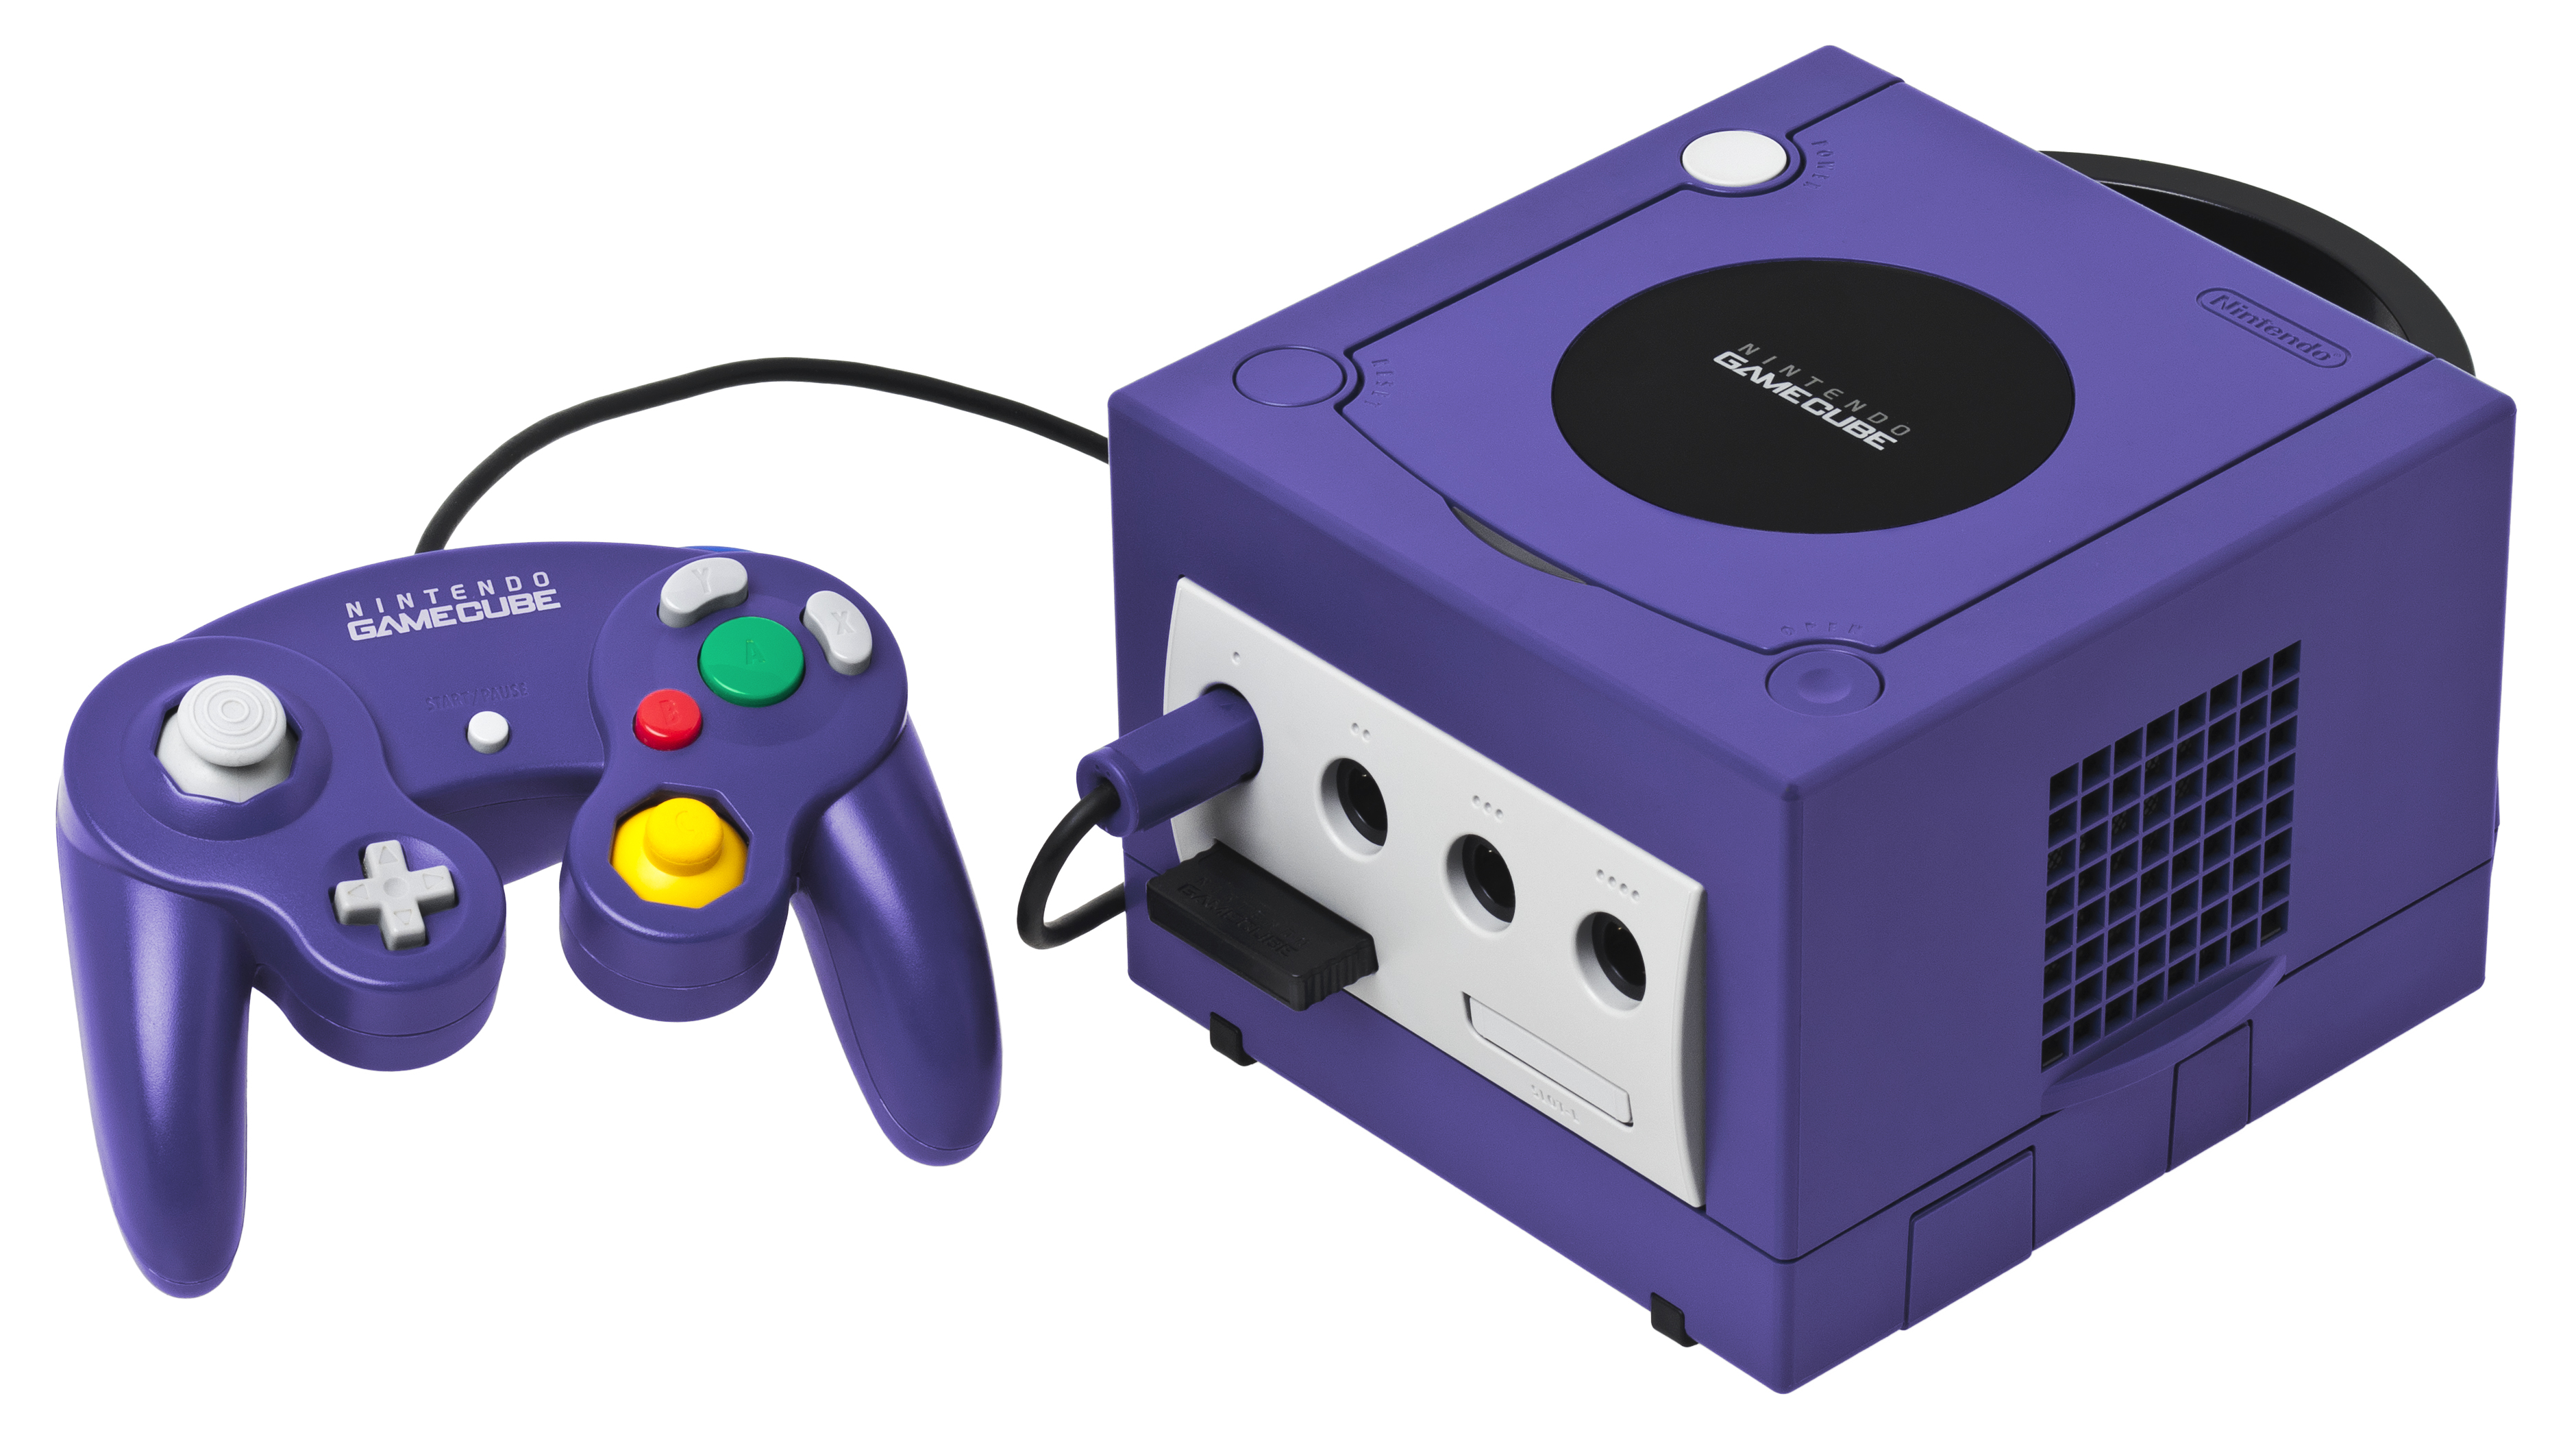 As The GameCube turns 20, we look back on Nintendo's beloved, maligned, one-of-a kind console